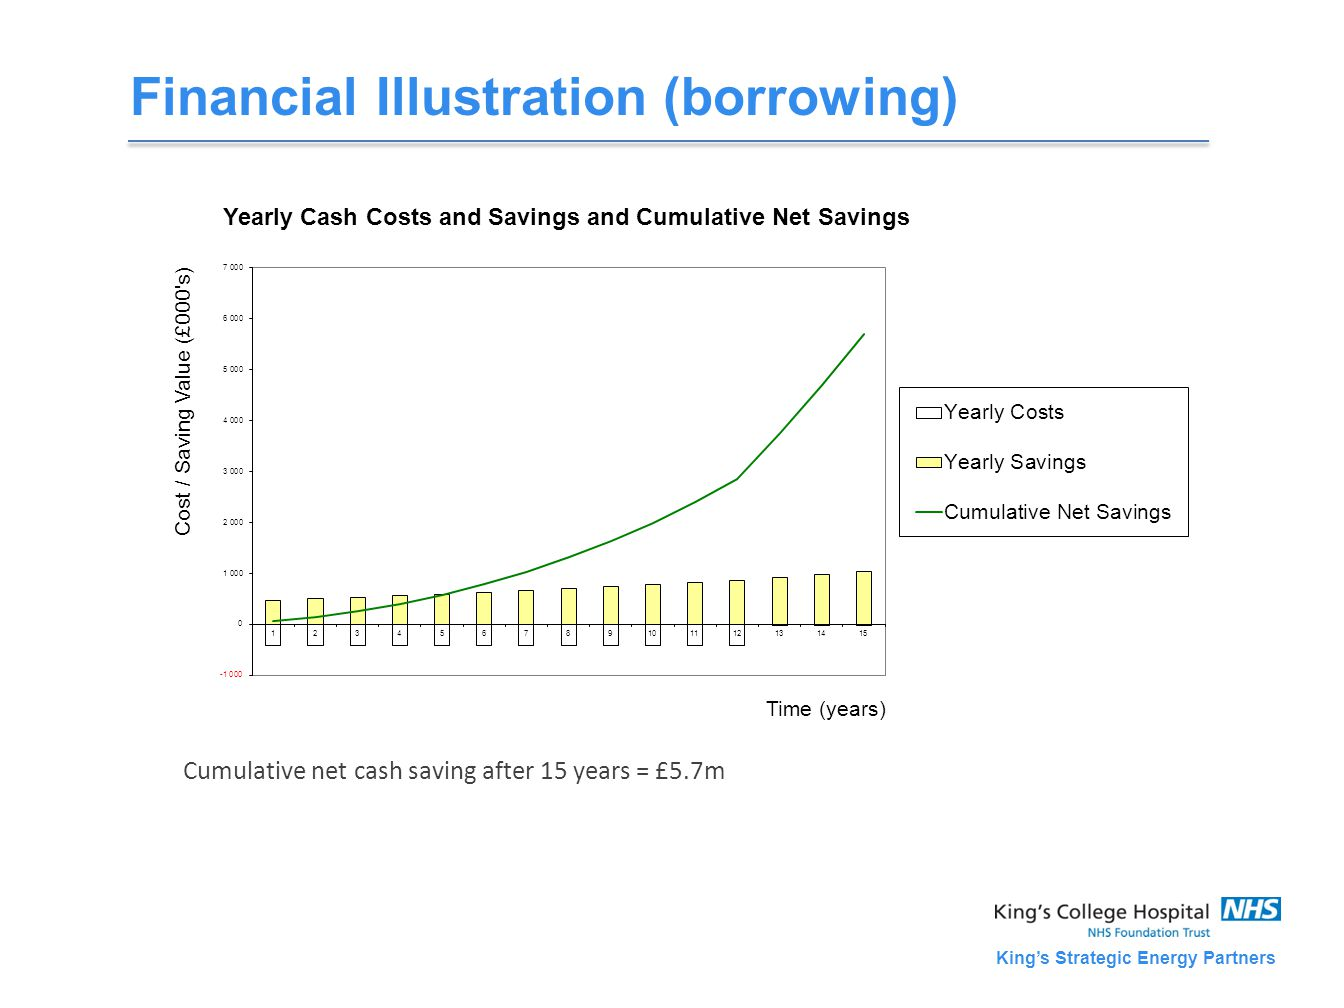 King's Strategic Energy Partners Financial Illustration (borrowing) Cumulative net cash saving after 15 years = £5.7m